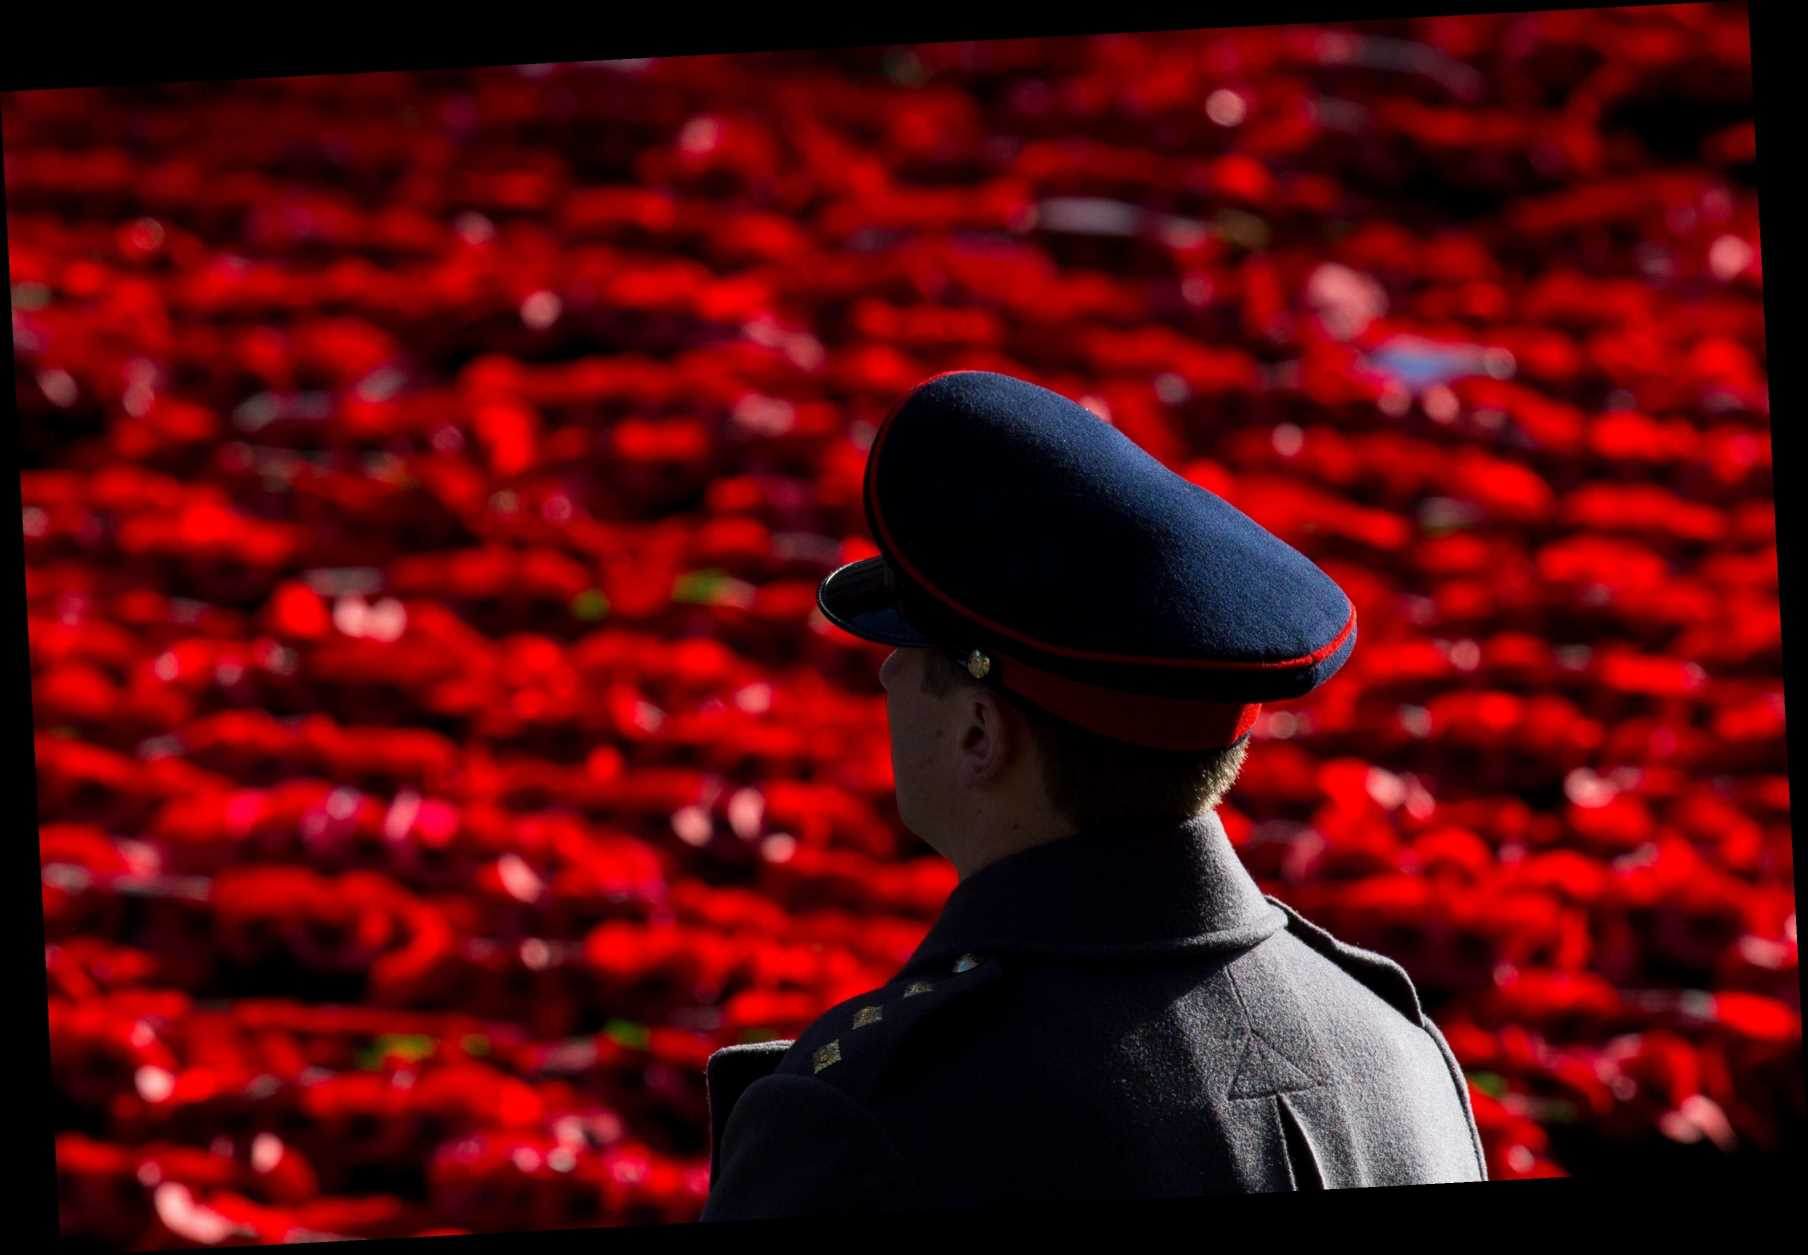 When do we start wearing a poppy for Remembrance Day 2020?